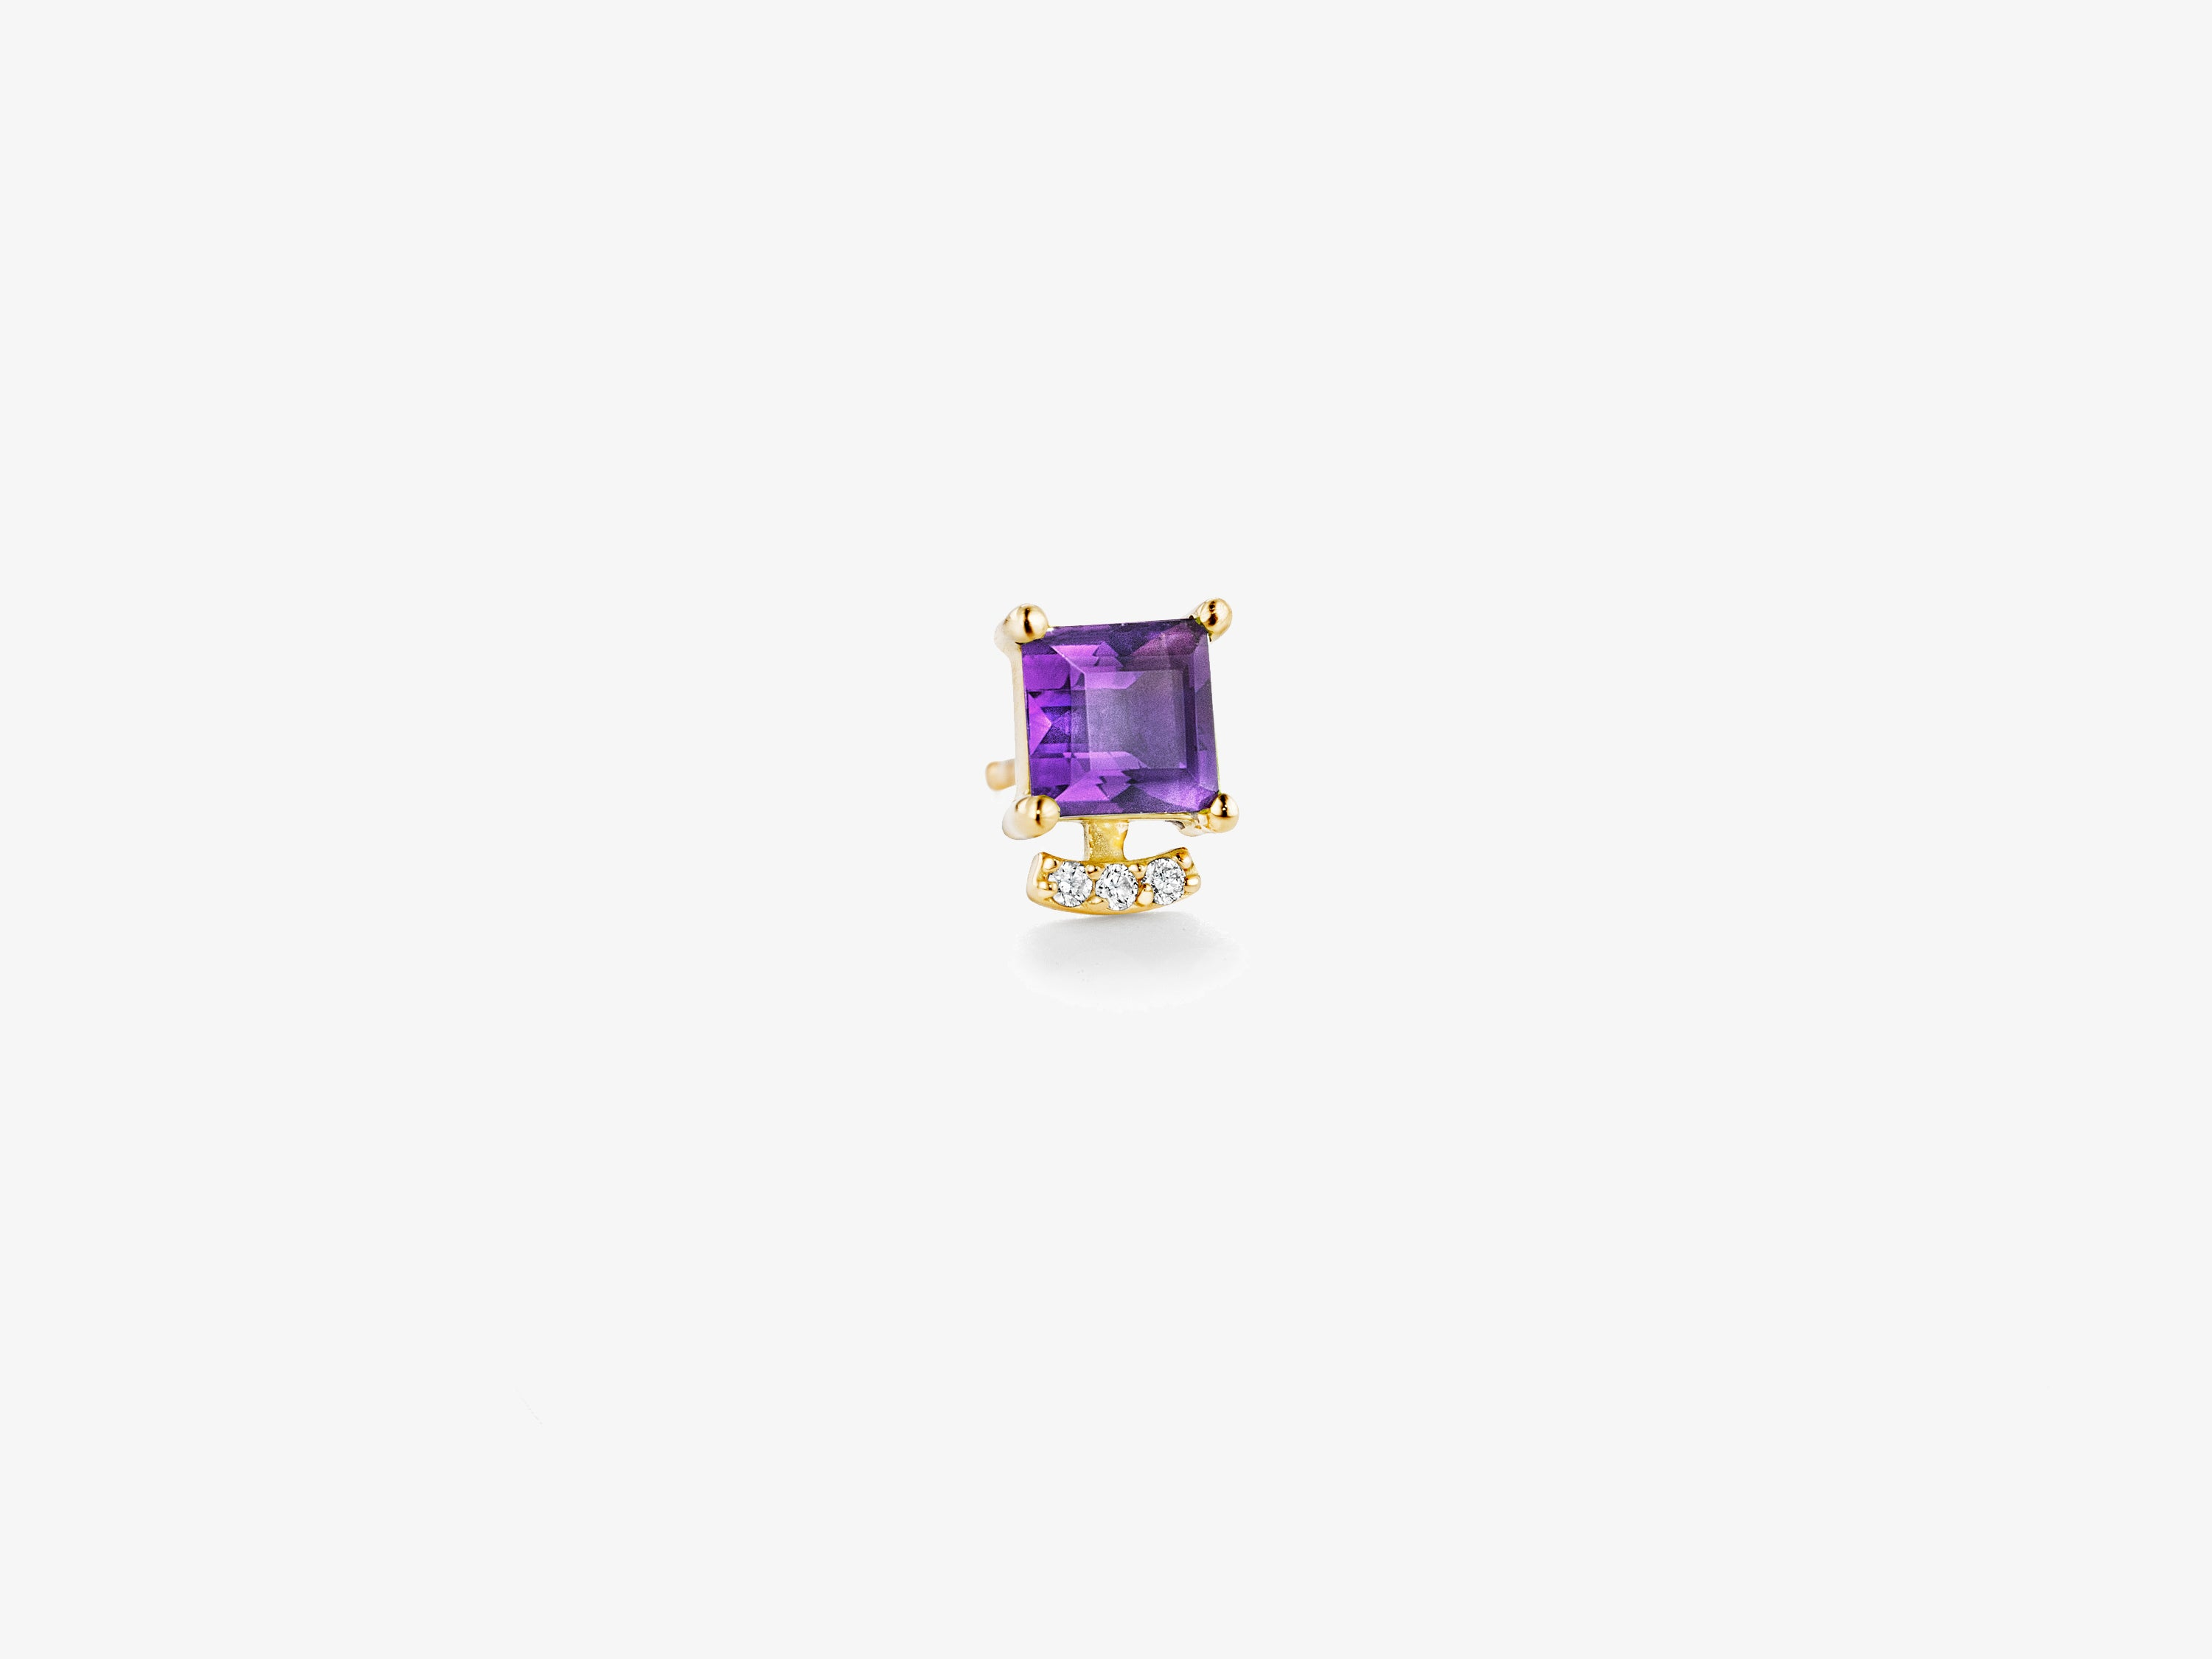 Small Single Square Gemstone Stud with Curved Diamond Pave Bar